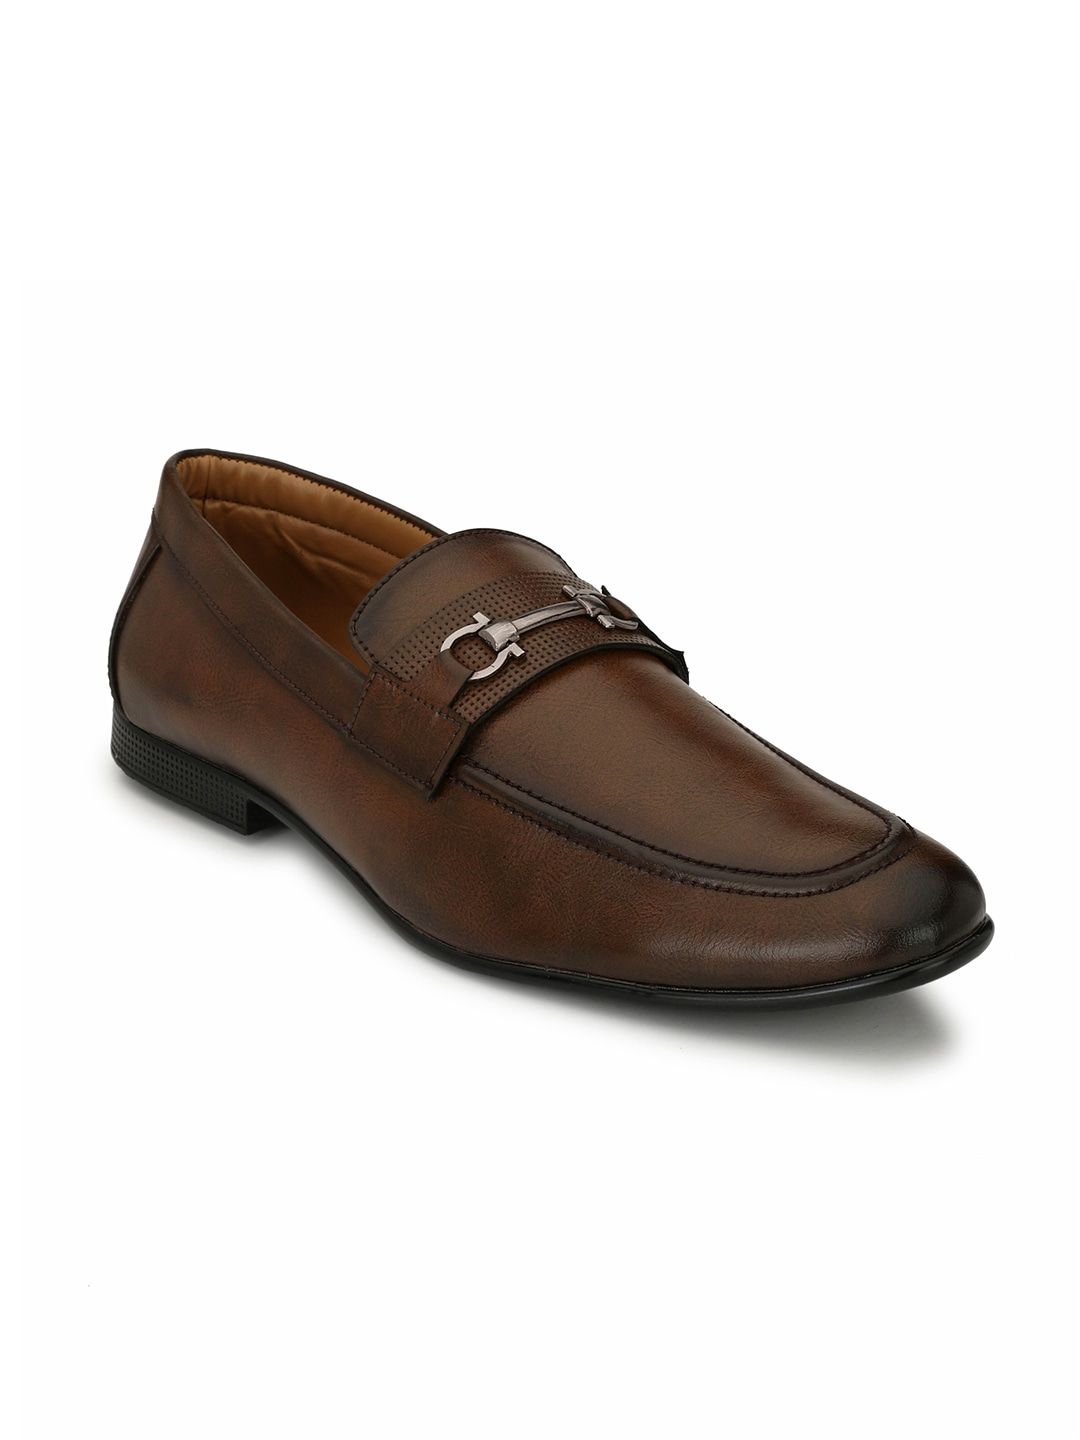 Leather Horsepit Loafers